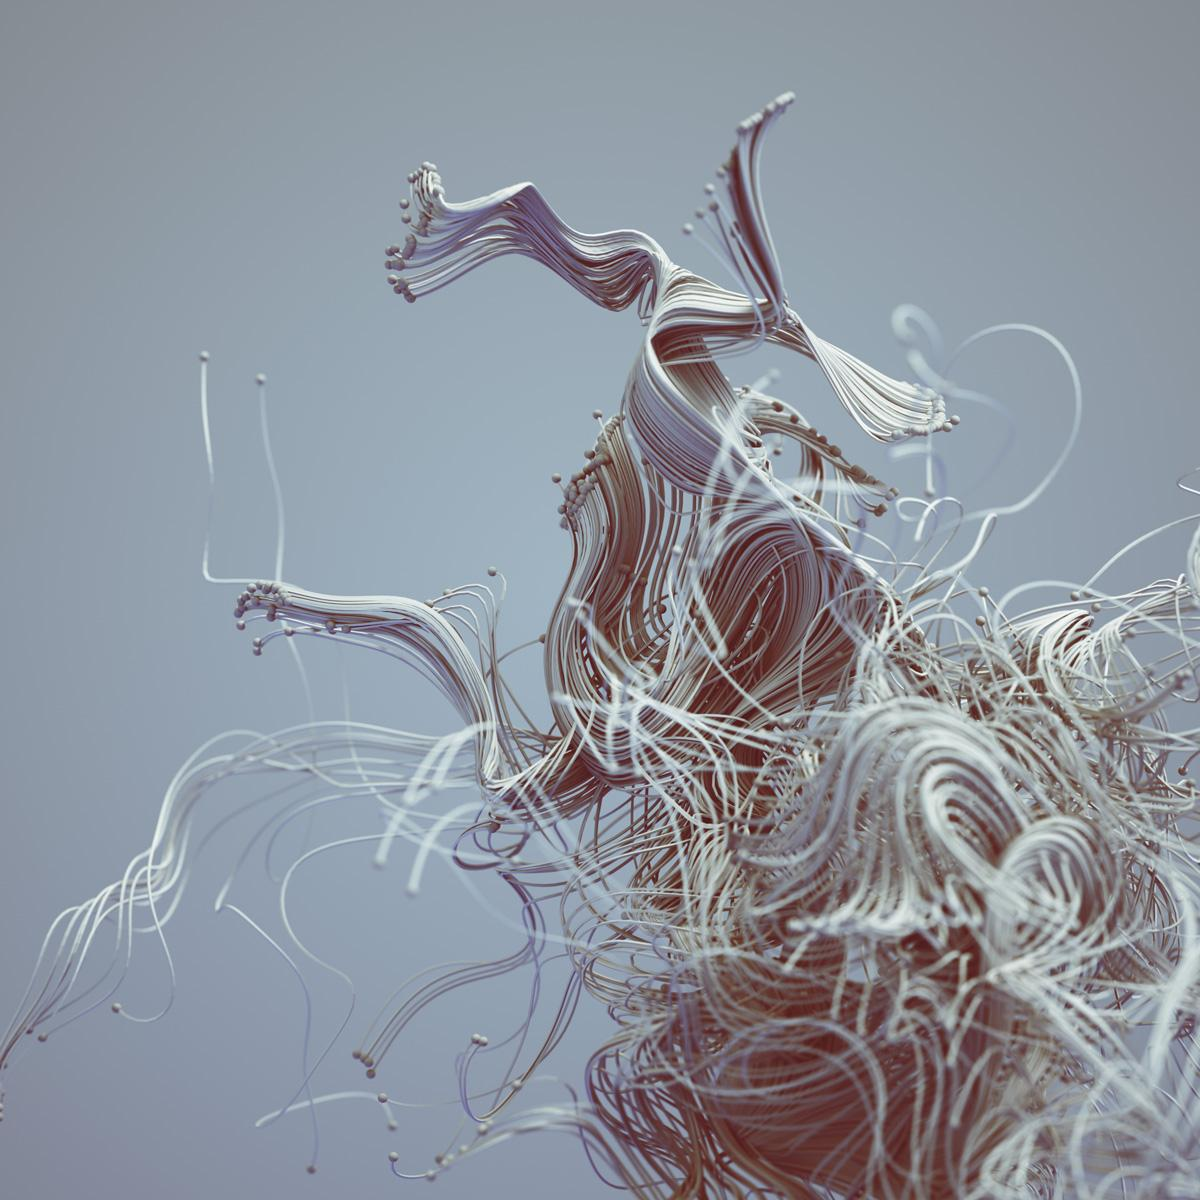 Rawrendered Hashtag On Twitter - 3d rendered experimental artworks